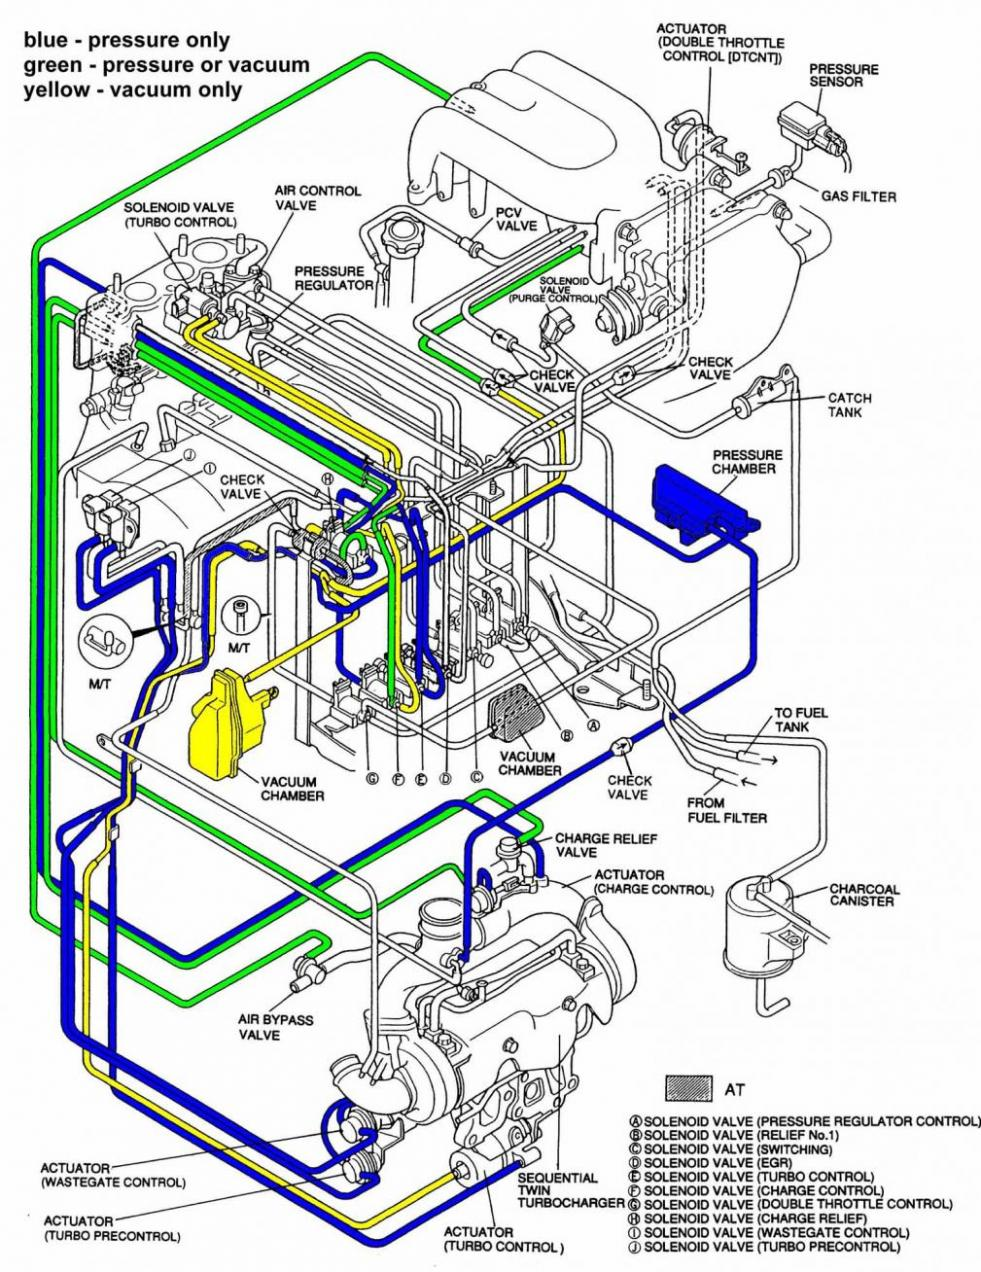 hight resolution of 1993 mercedes 300e wiring diagram free picture images gallery